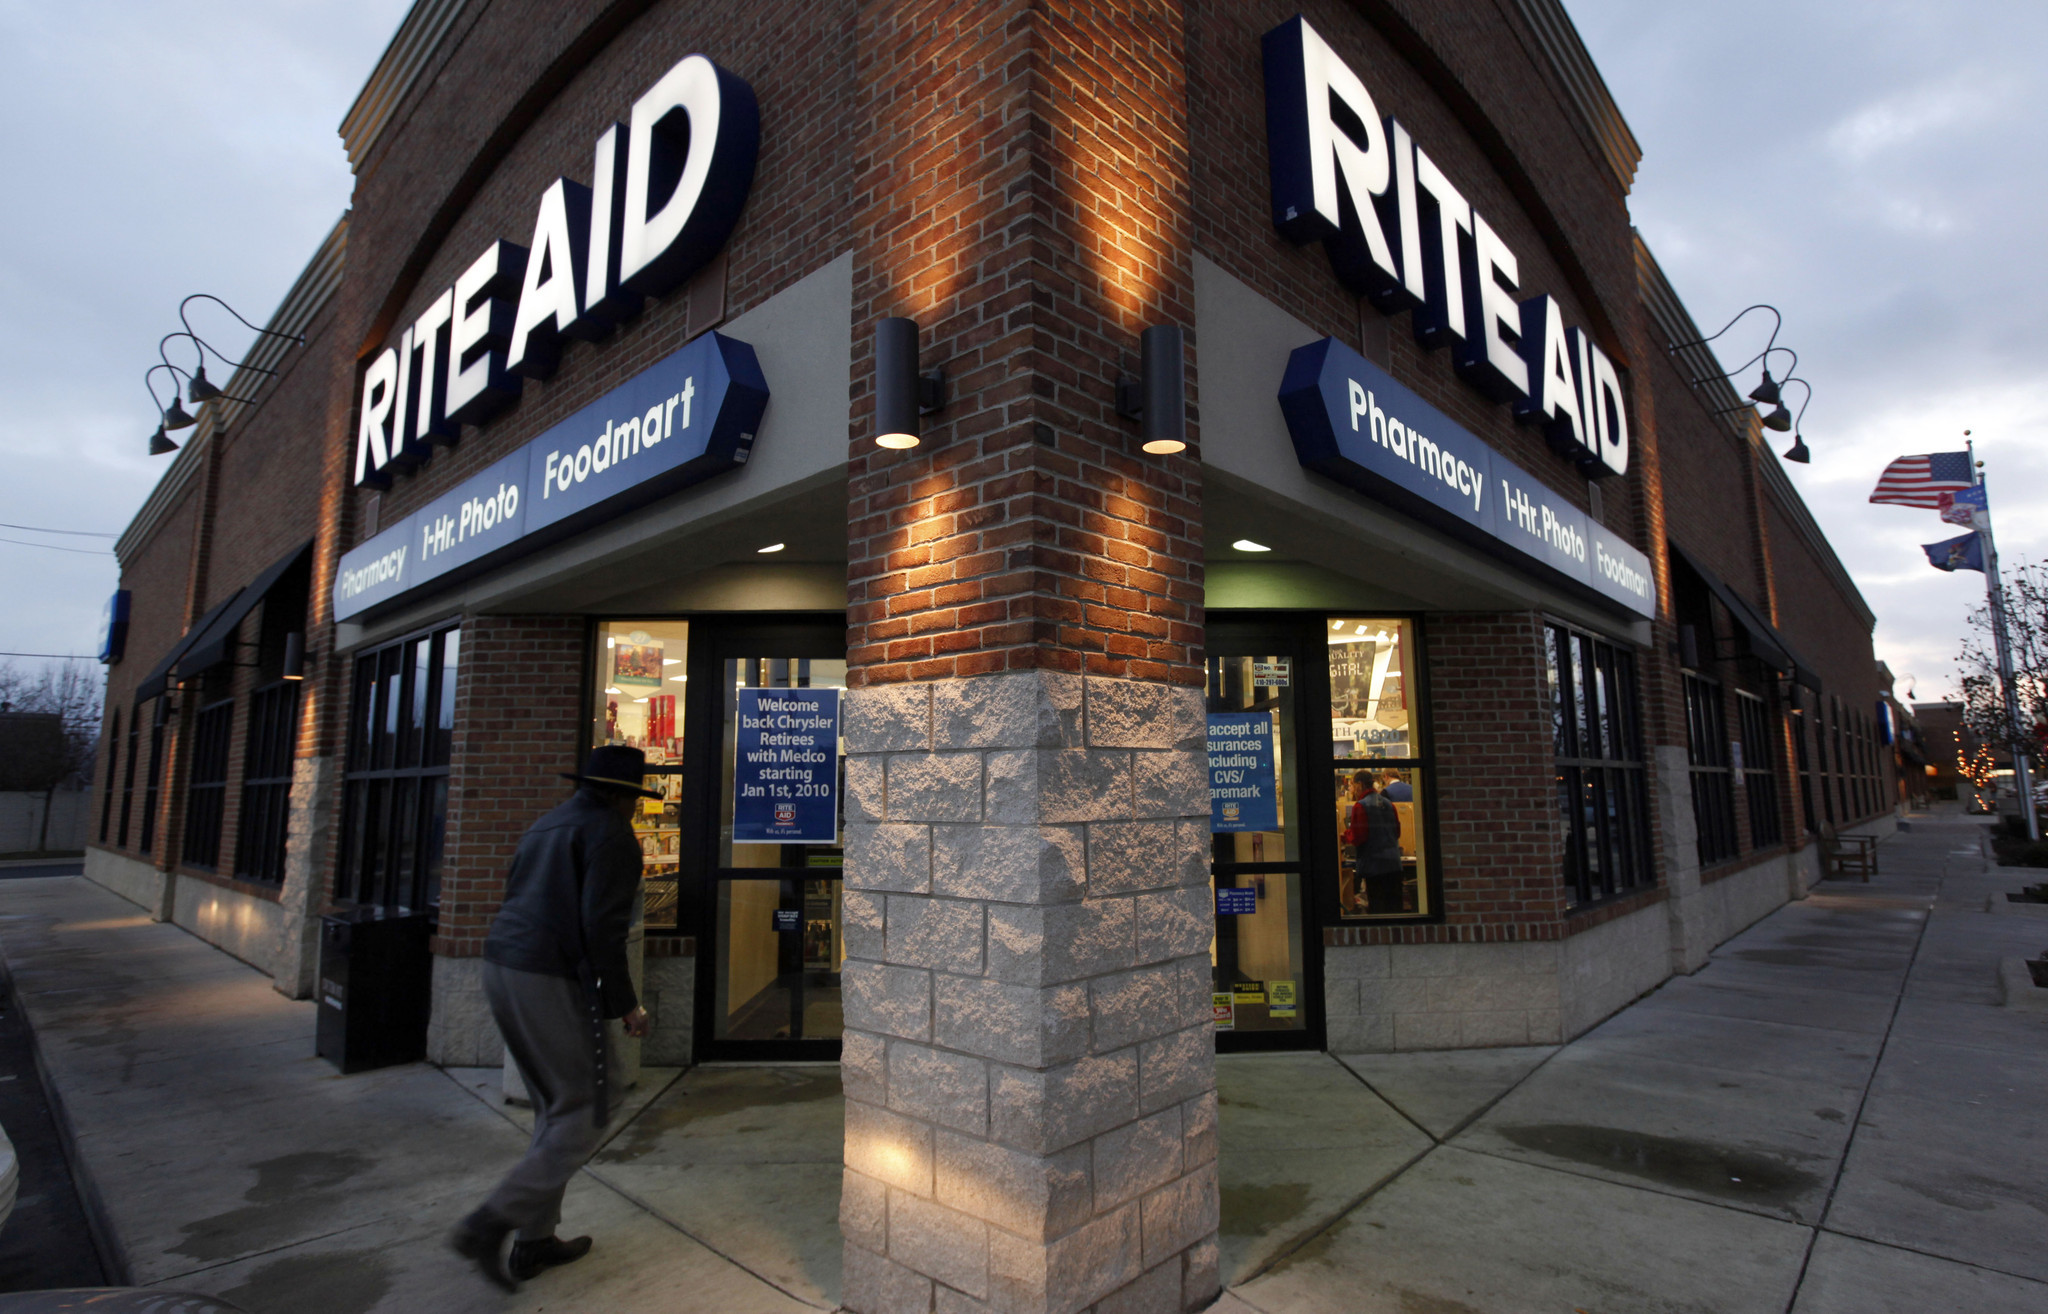 walgreens will focus on retail health care with rite aid